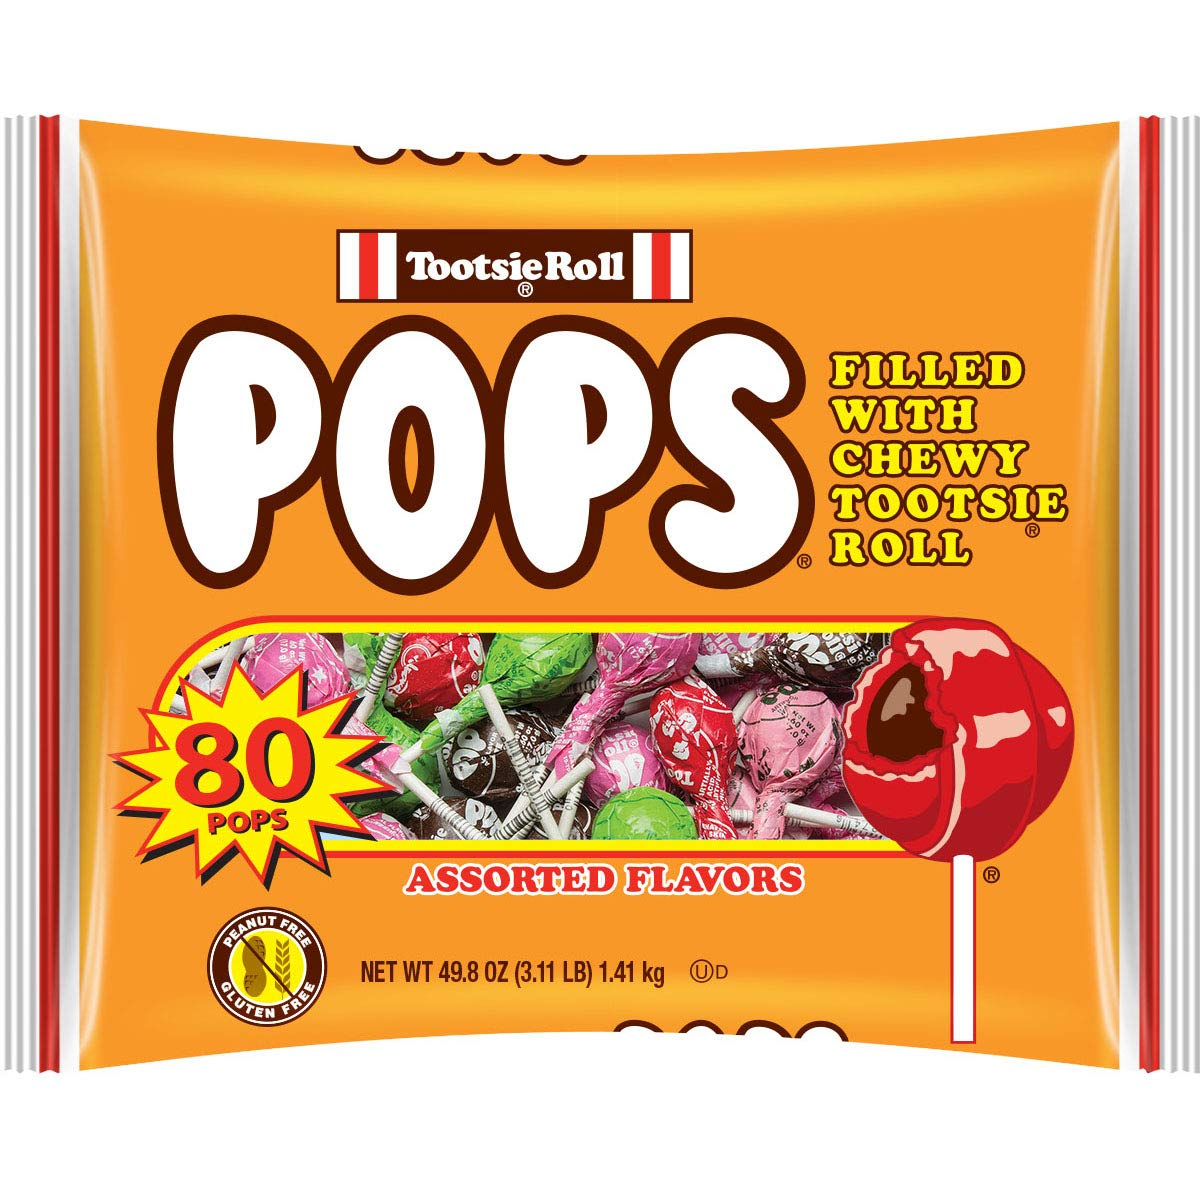 Tootsie Pops Original Assorted Flavors with Chocolatey Center, 80 Count Halloween Candy Giveaway Bag Peanut Free, Gluten Free